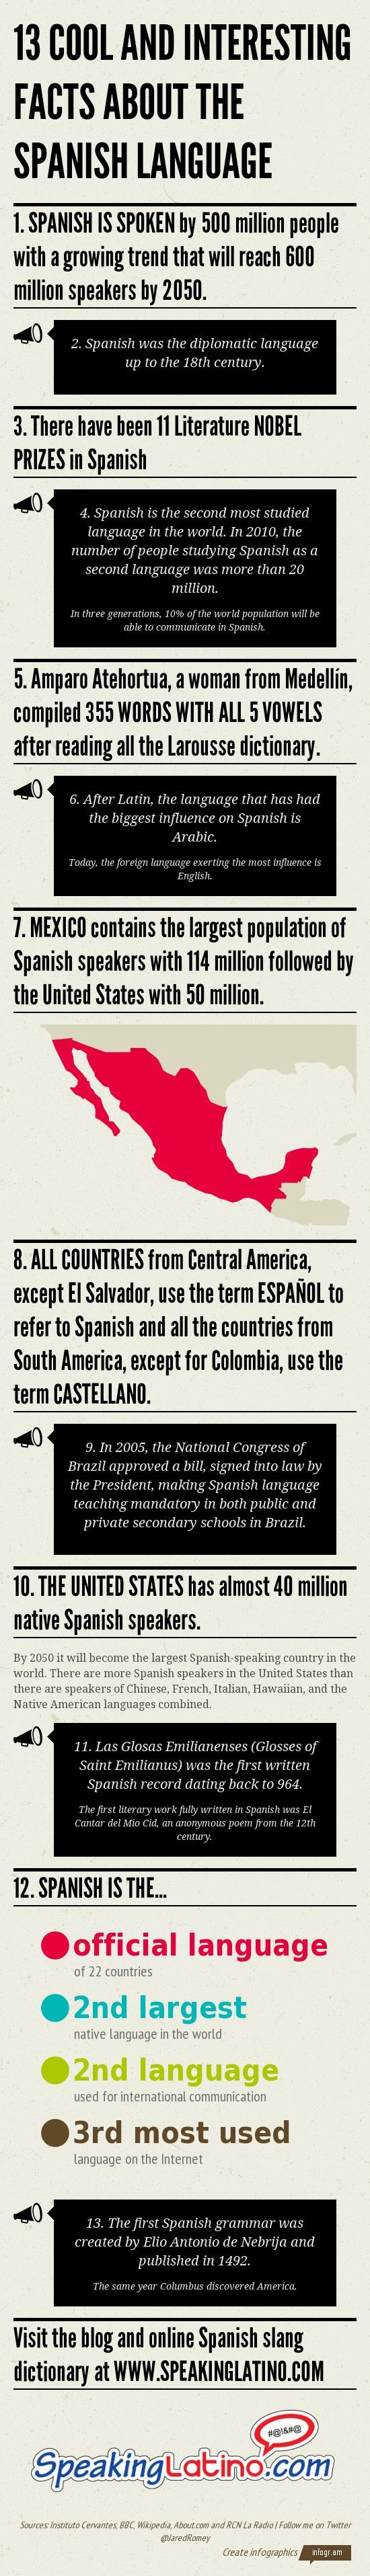 13 Cool and Interesting Facts About the Spanish Language #Spanish #Infographic by http://www.speakinglatino.com/13-cool-and-interesting-facts-about-the-spanish-language/